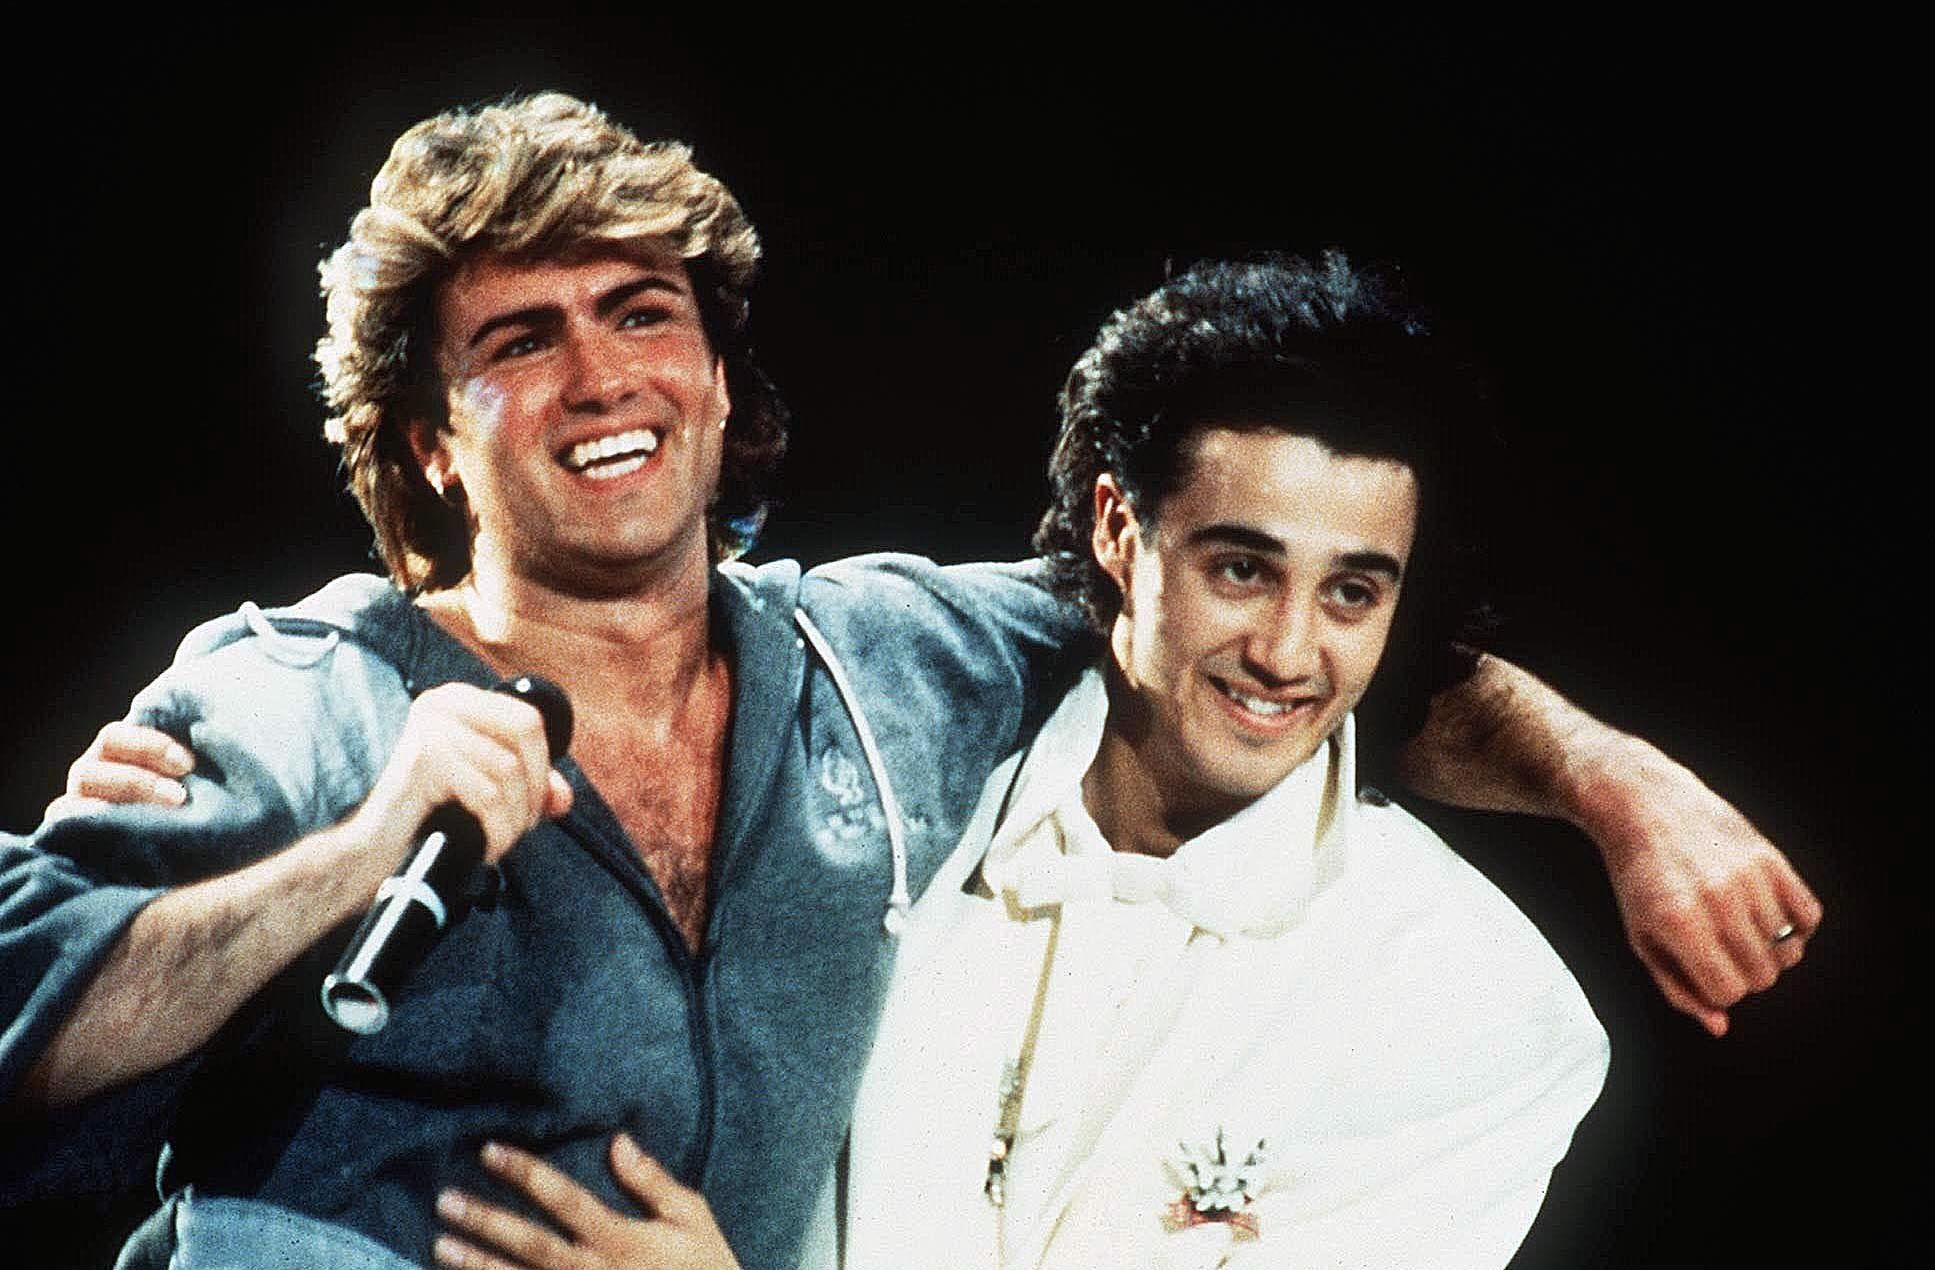 Andrew Ridgeley Slams 'Reprehensible' Channel 5 Over George Michael